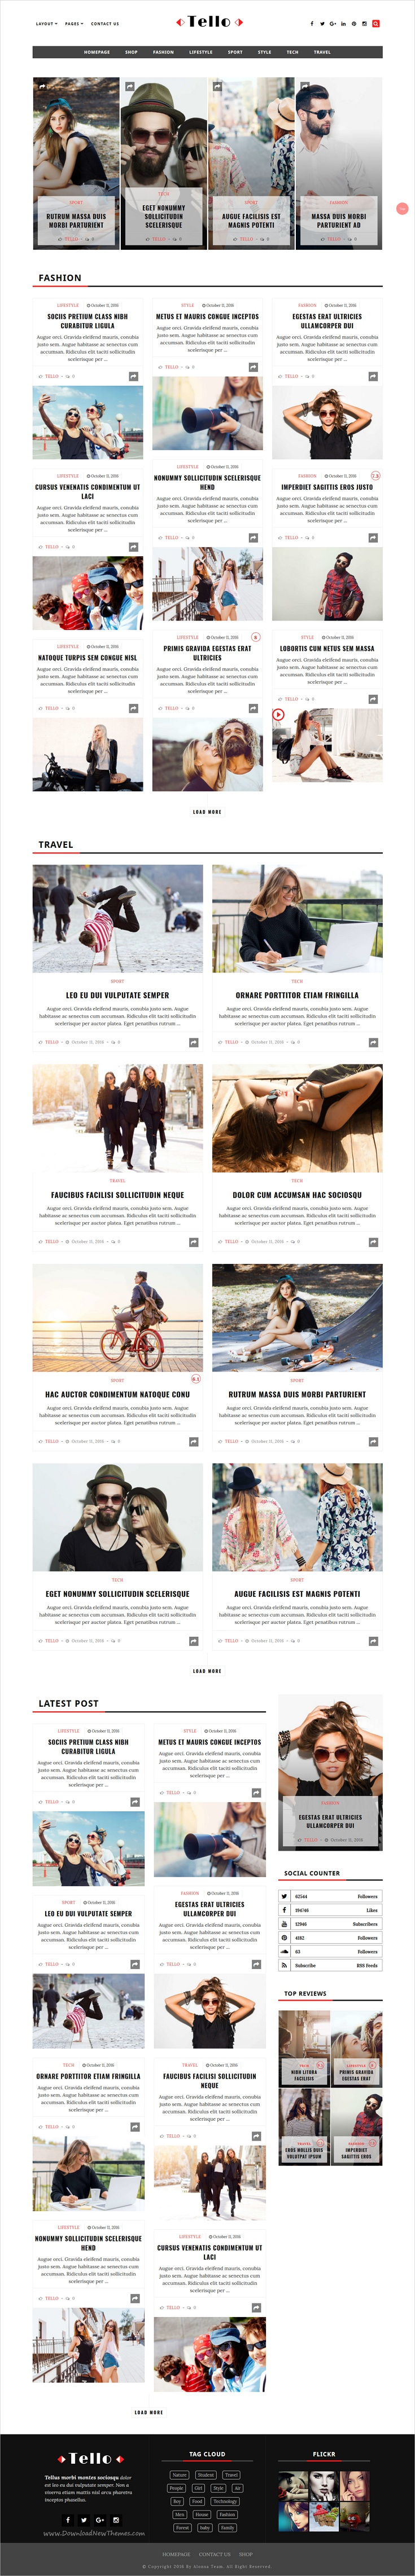 Tello is a wonderful responsive #WordPress theme best suited for #magazine, #news or #blog websites download now➩  https://themeforest.net/item/tello-wordpress-magazineblog-theme/19016157?ref=Datasata